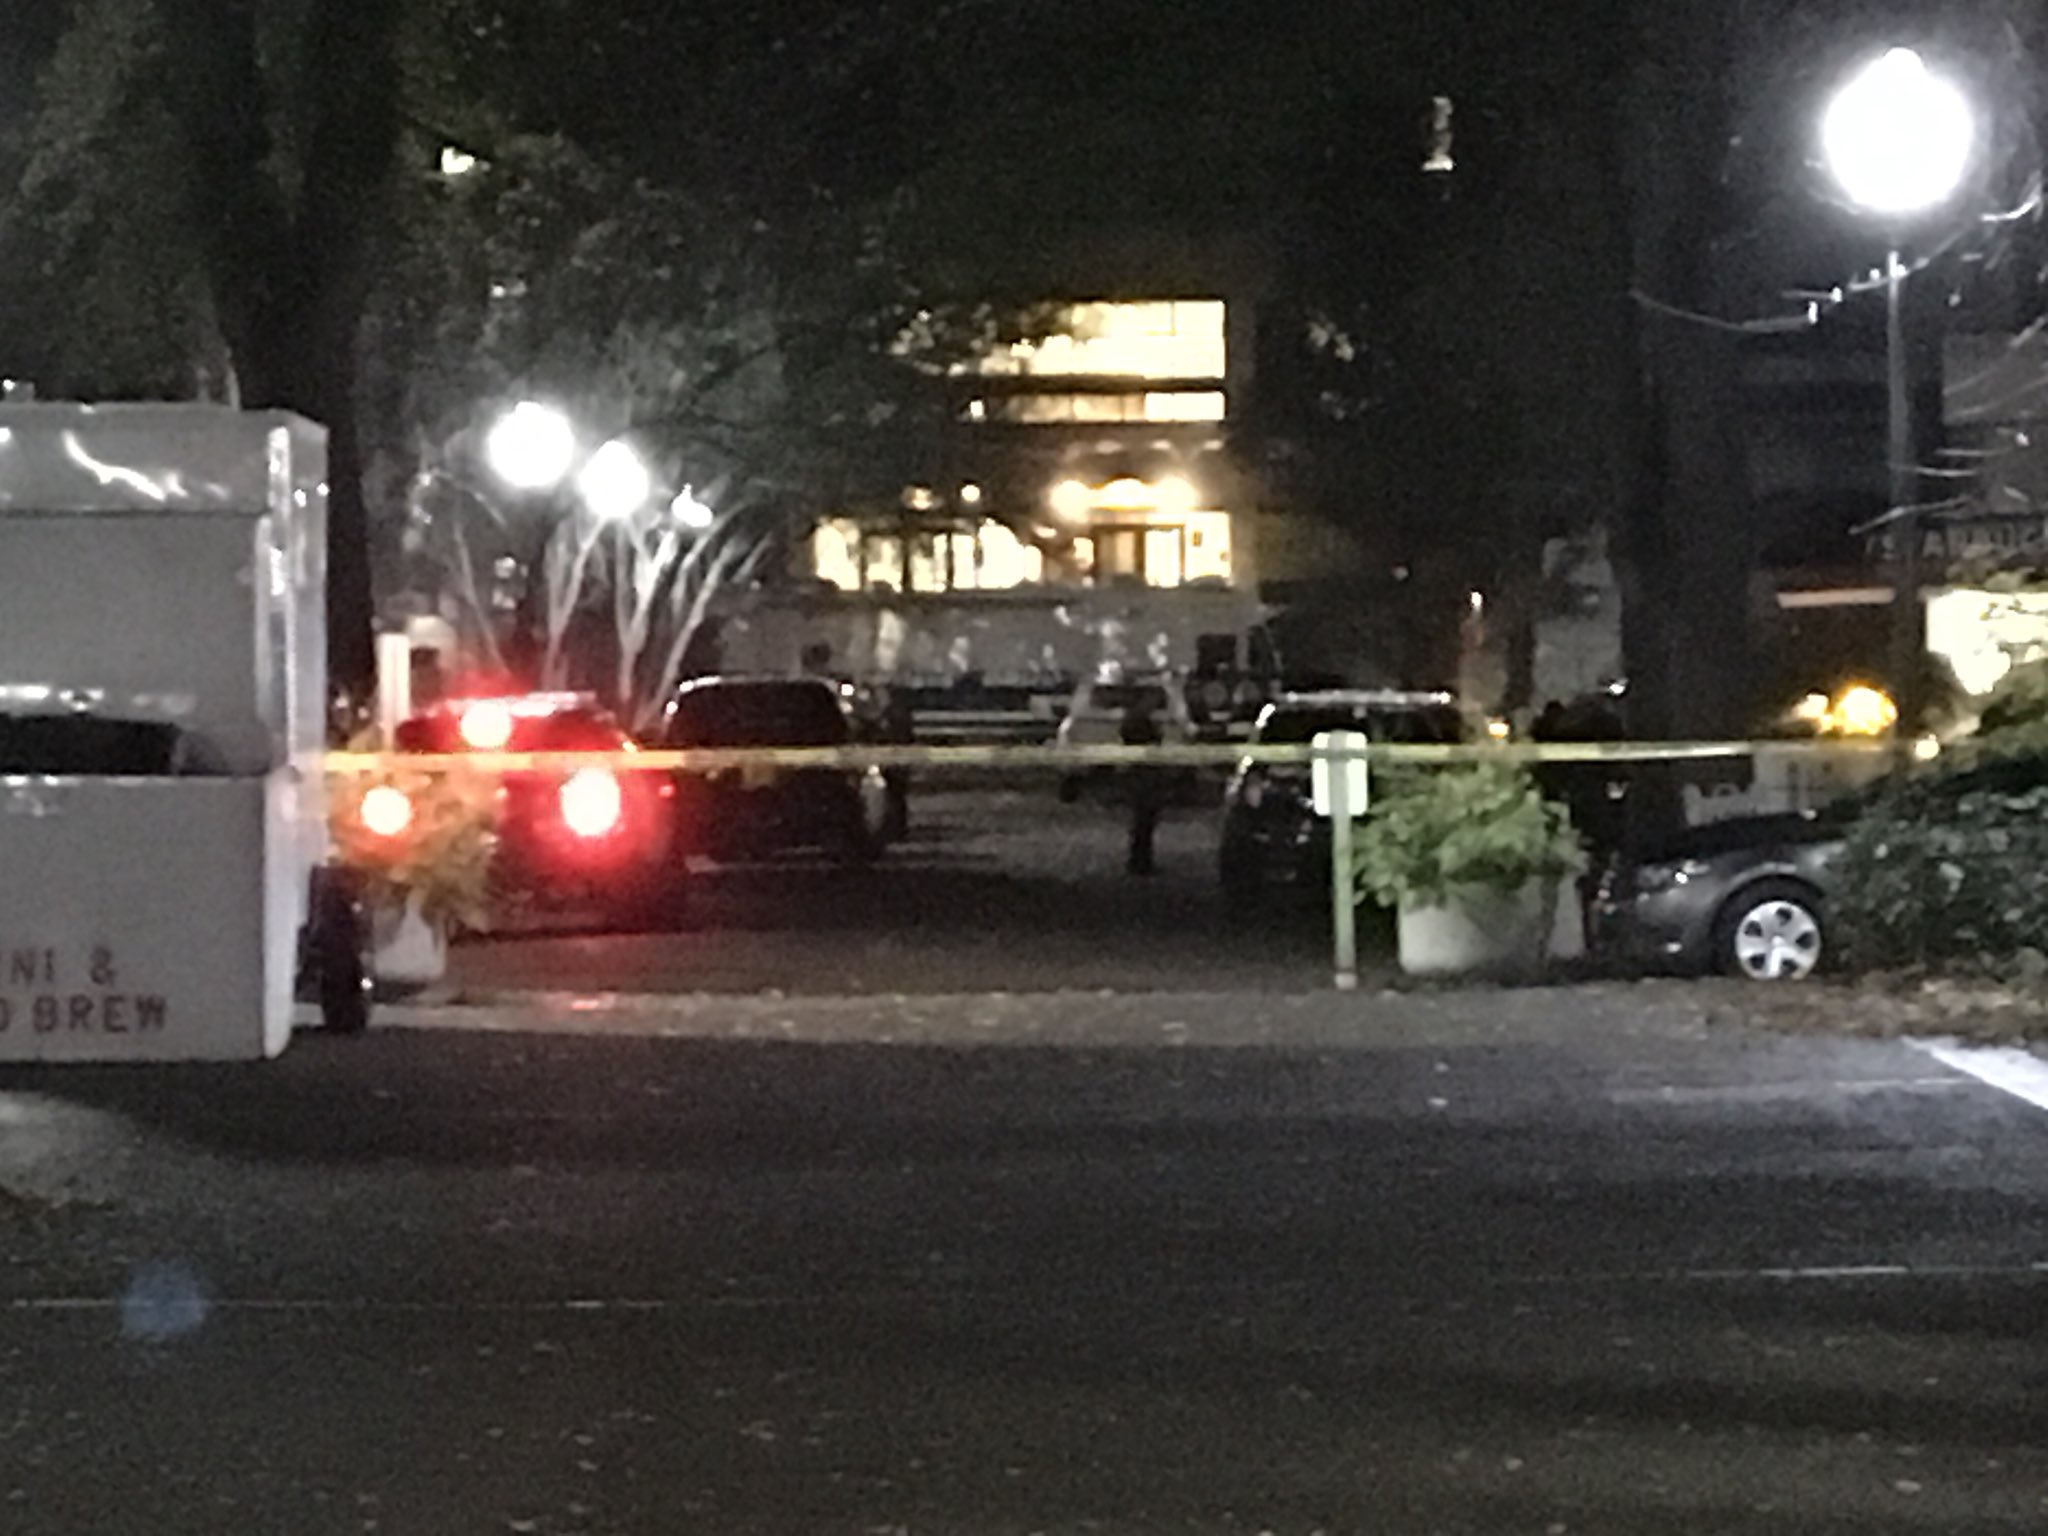 Police officers are conducting a death investigation on the Portland State University campus. They said they responded to a report of a shooting and found one person dead the morning of Nov. 7, 2017. (SBG photo){&amp;nbsp;}<p></p>